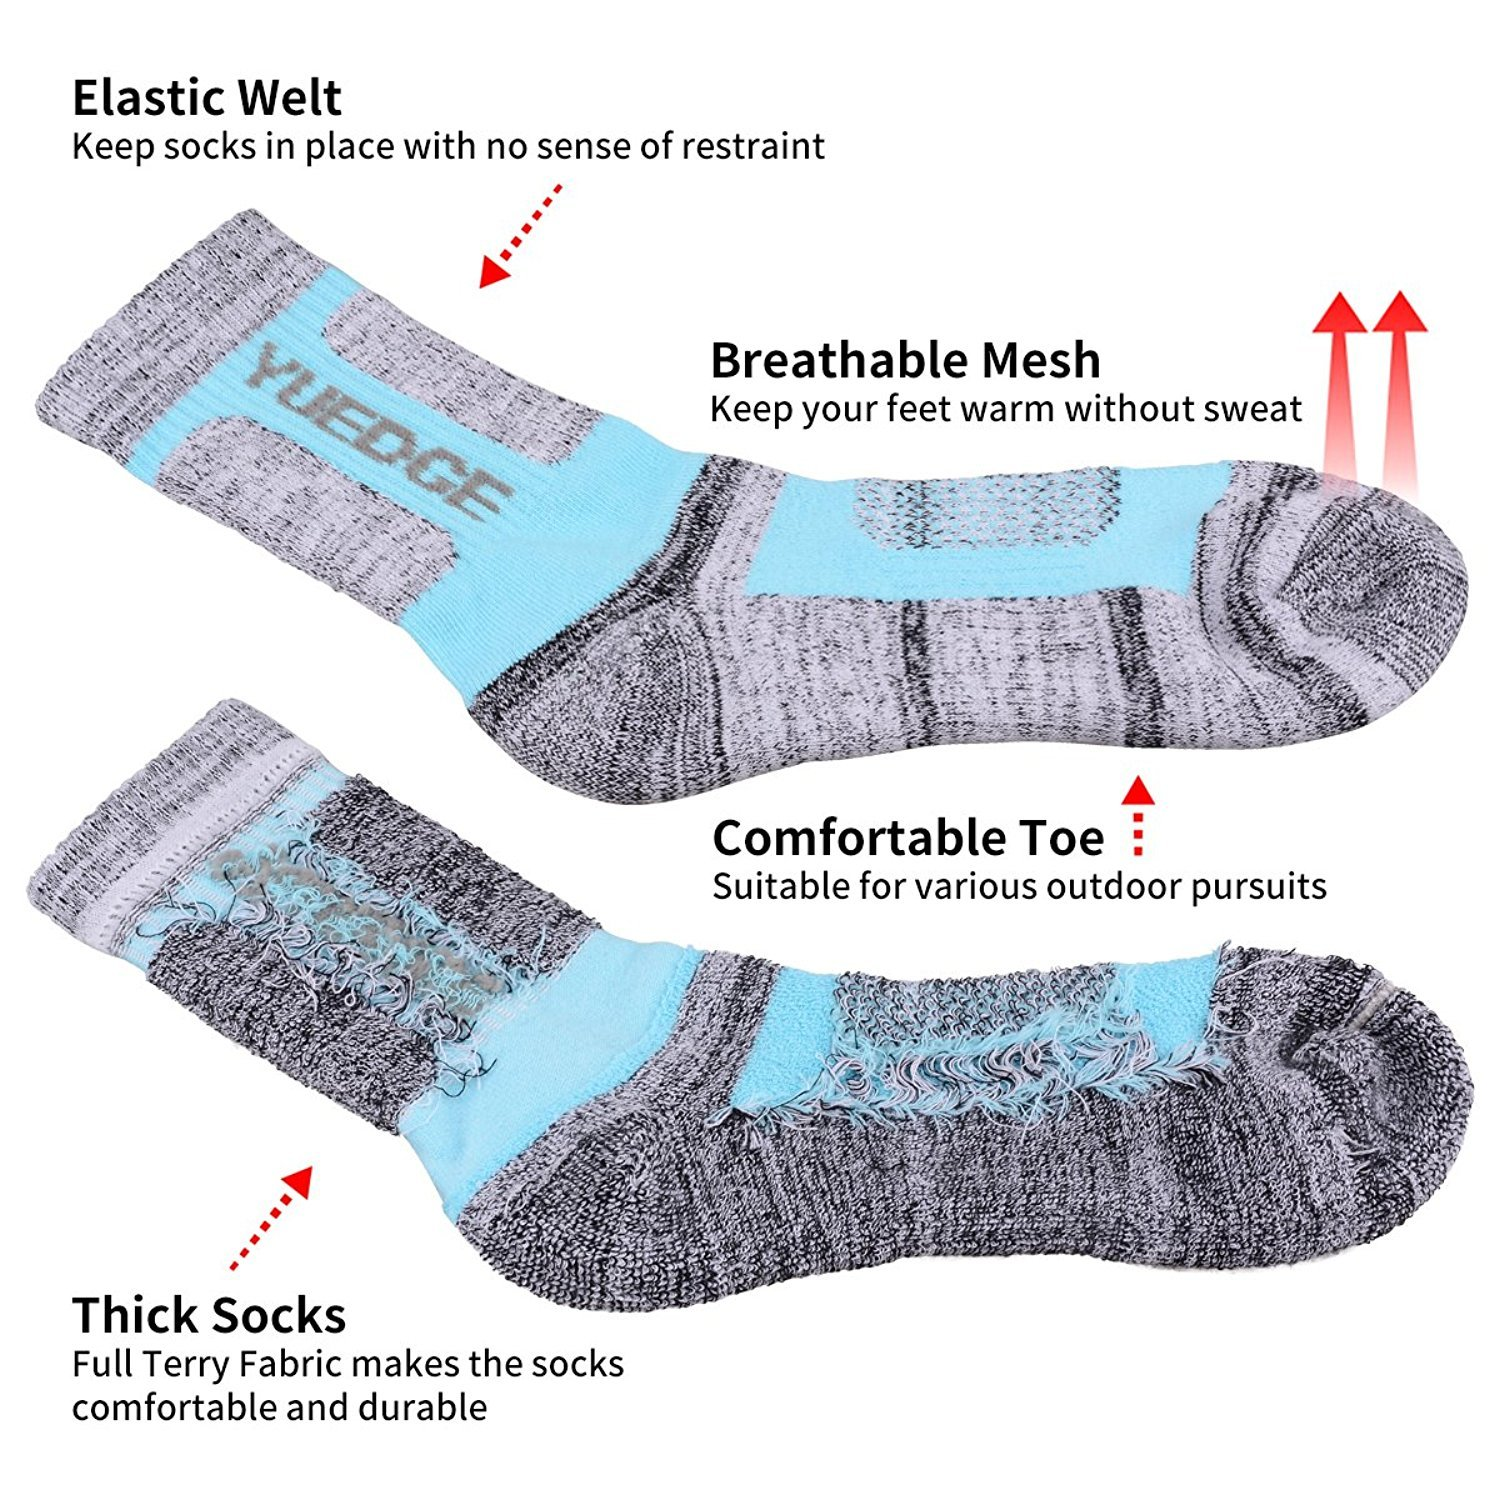 YUEDGE Women's 5 Pairs Wicking Cushion Anti Blister Outdoor Crew Socks for Hiking Walking Running Climbing Backpacking Skiing Year Round(L) by YUEDGE (Image #3)